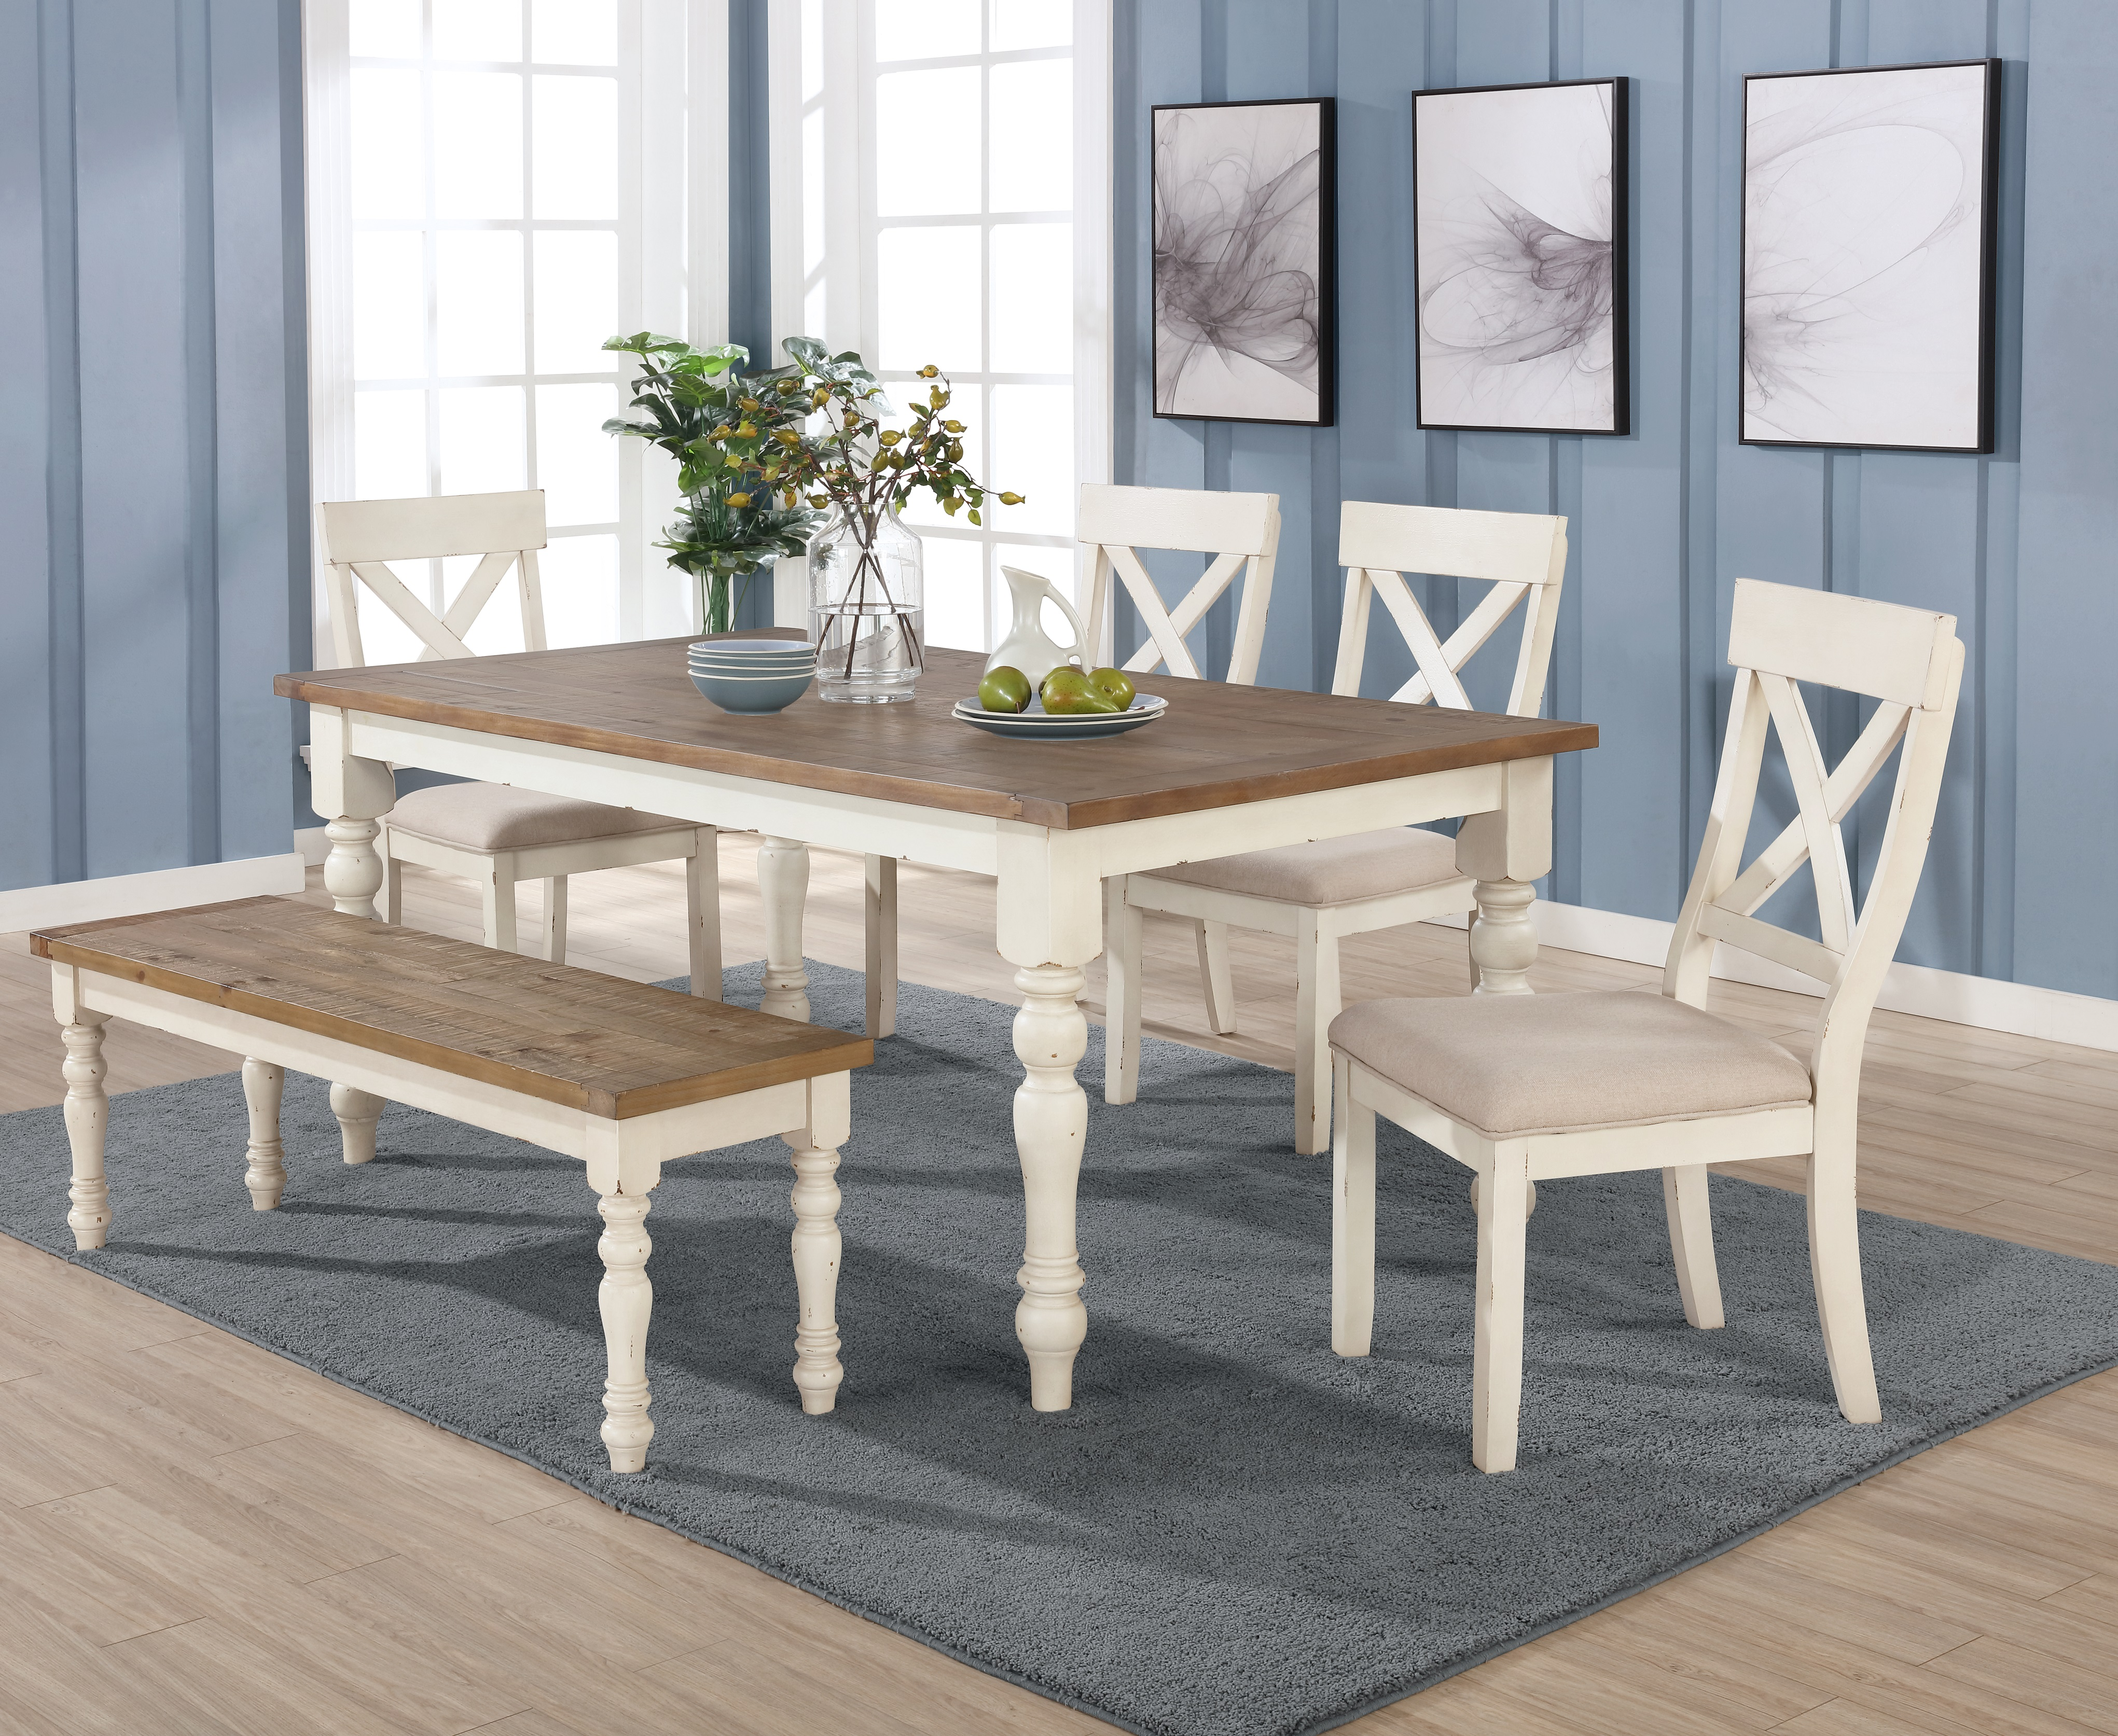 Prato 6-piece Dining Table Set With Cross Back Chairs and Bench, Antique White and Distressed Oak